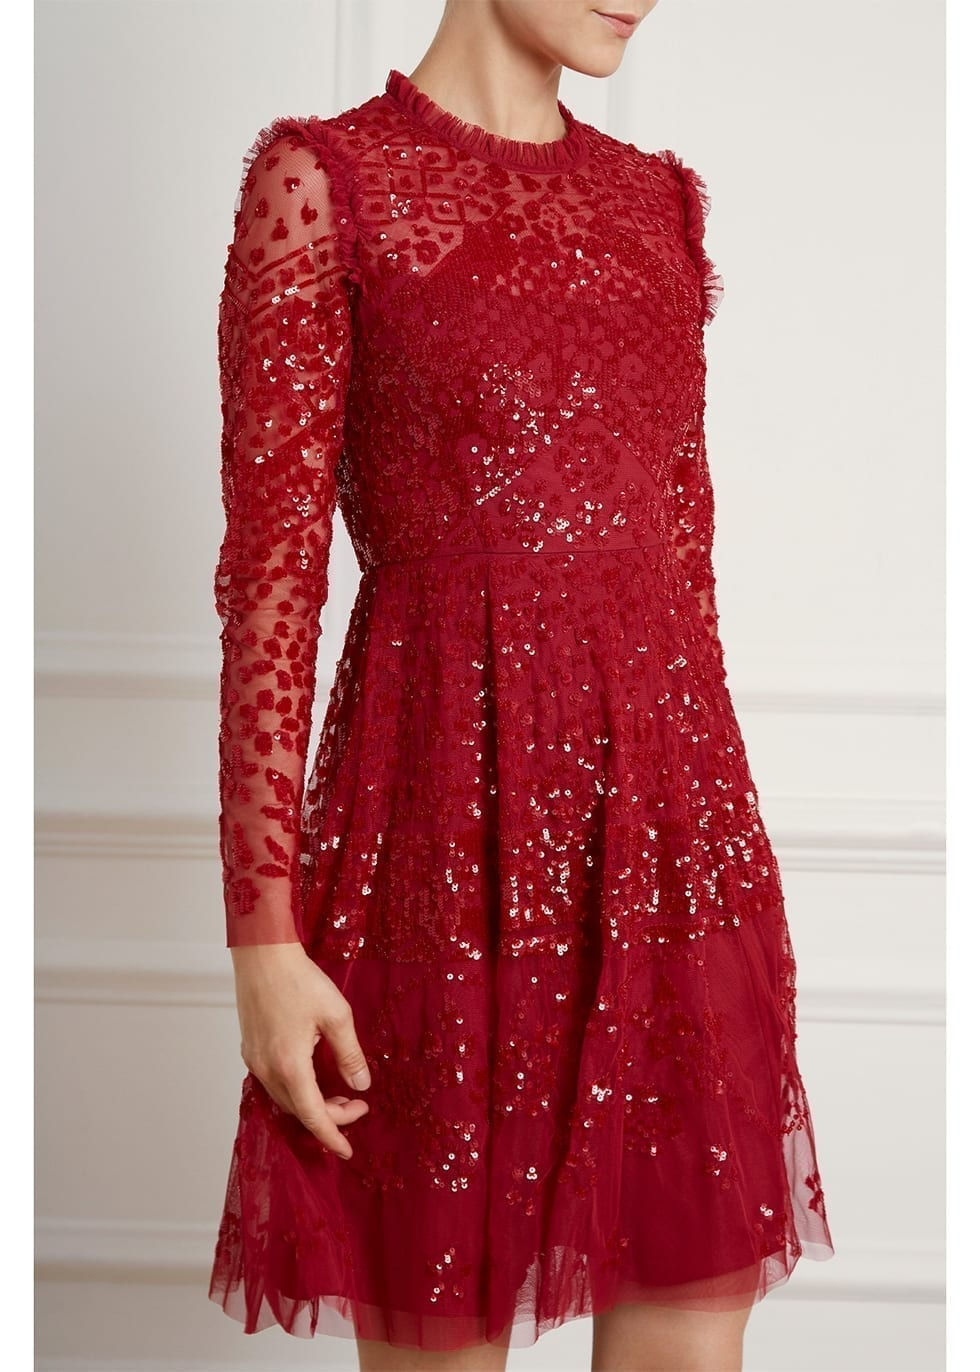 NEEDLE & THREAD Aurora Red Sequin-embellished Tulle Mini Dress